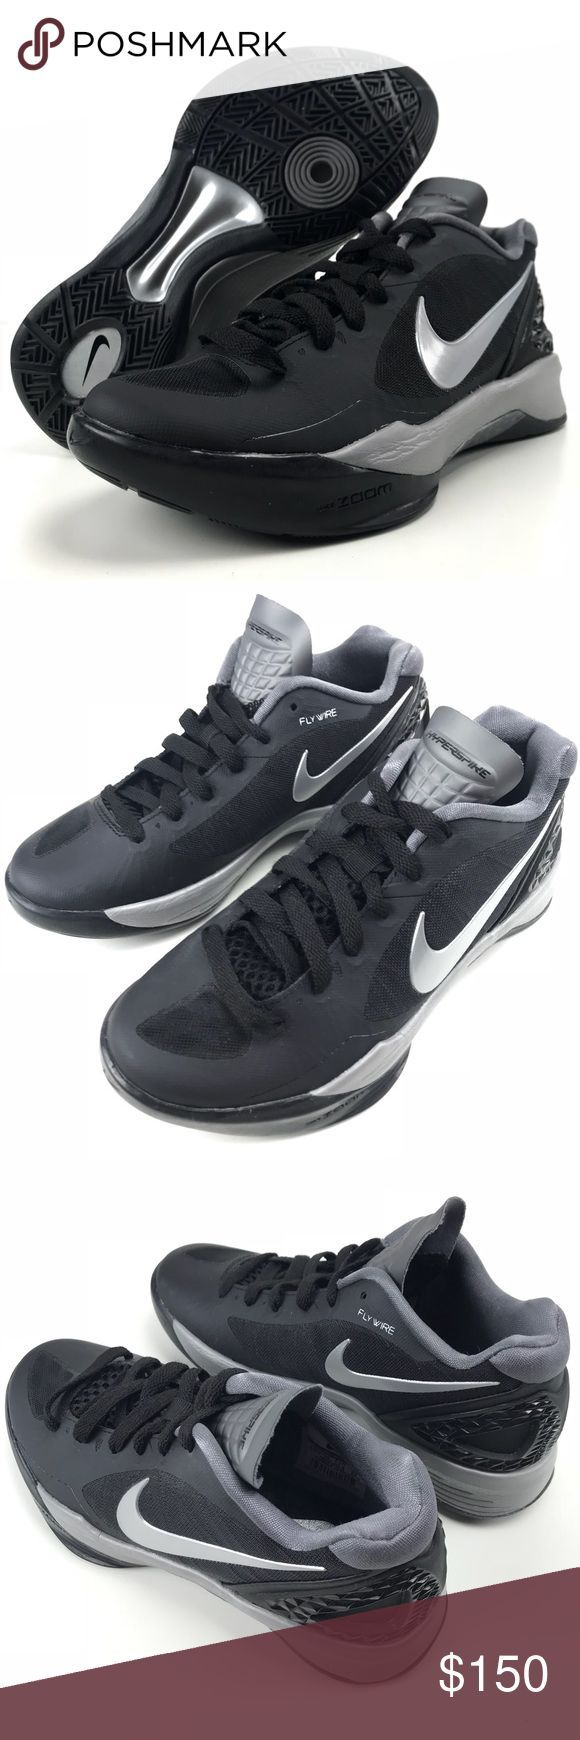 Nike Volleyball Shoes Hyperspike Volley Shoes Nike Volleyball Shoes Women S Colorful Nbsp Photoofthe Nike Volleyball Shoes Nike Volleyball Volleyball Shoes